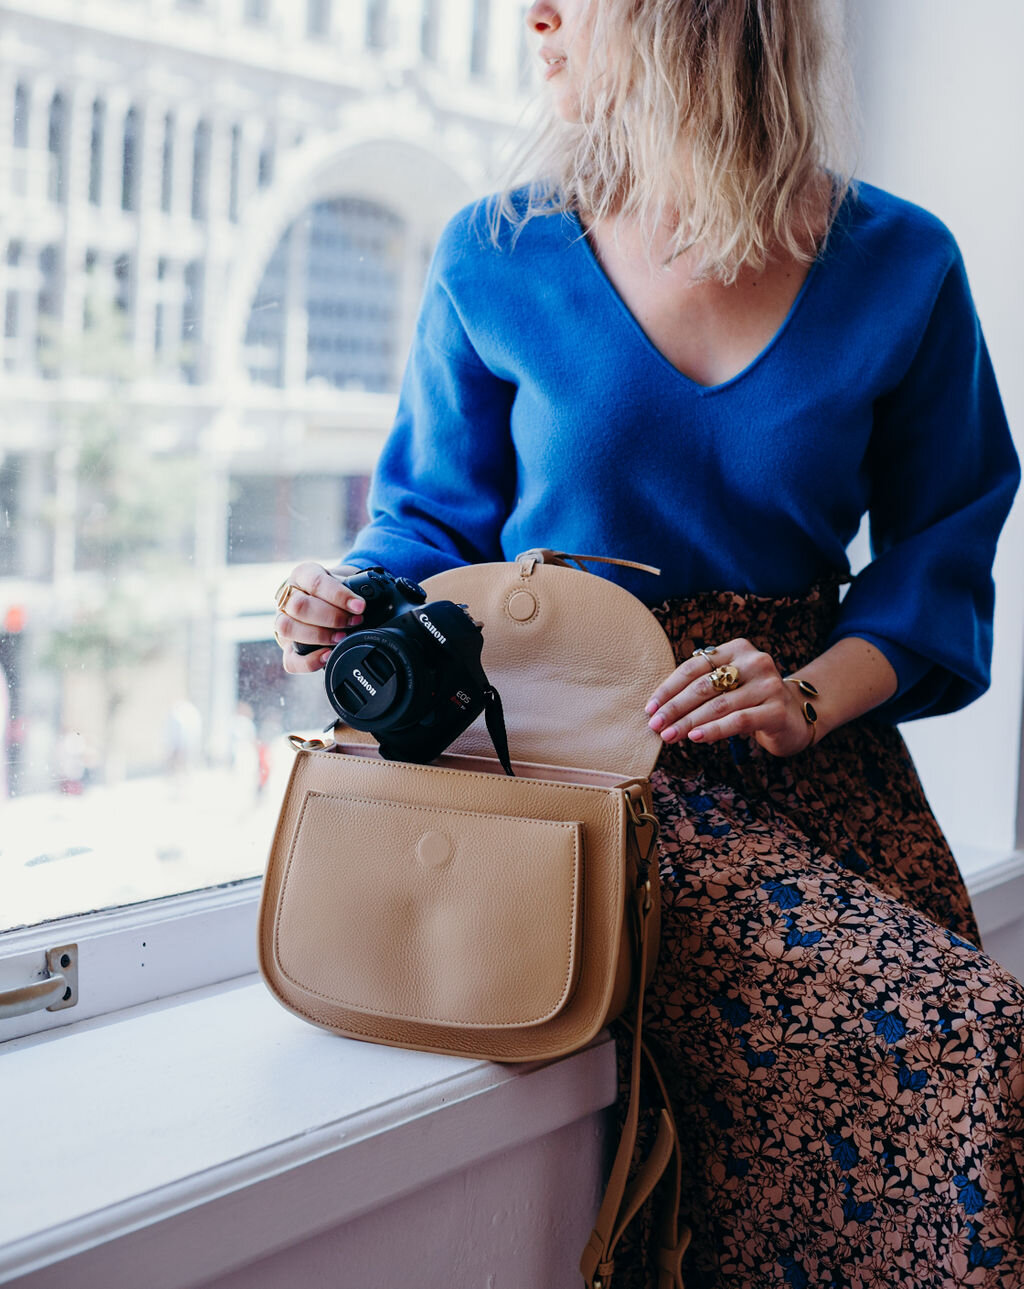 best women camera bag for traveling